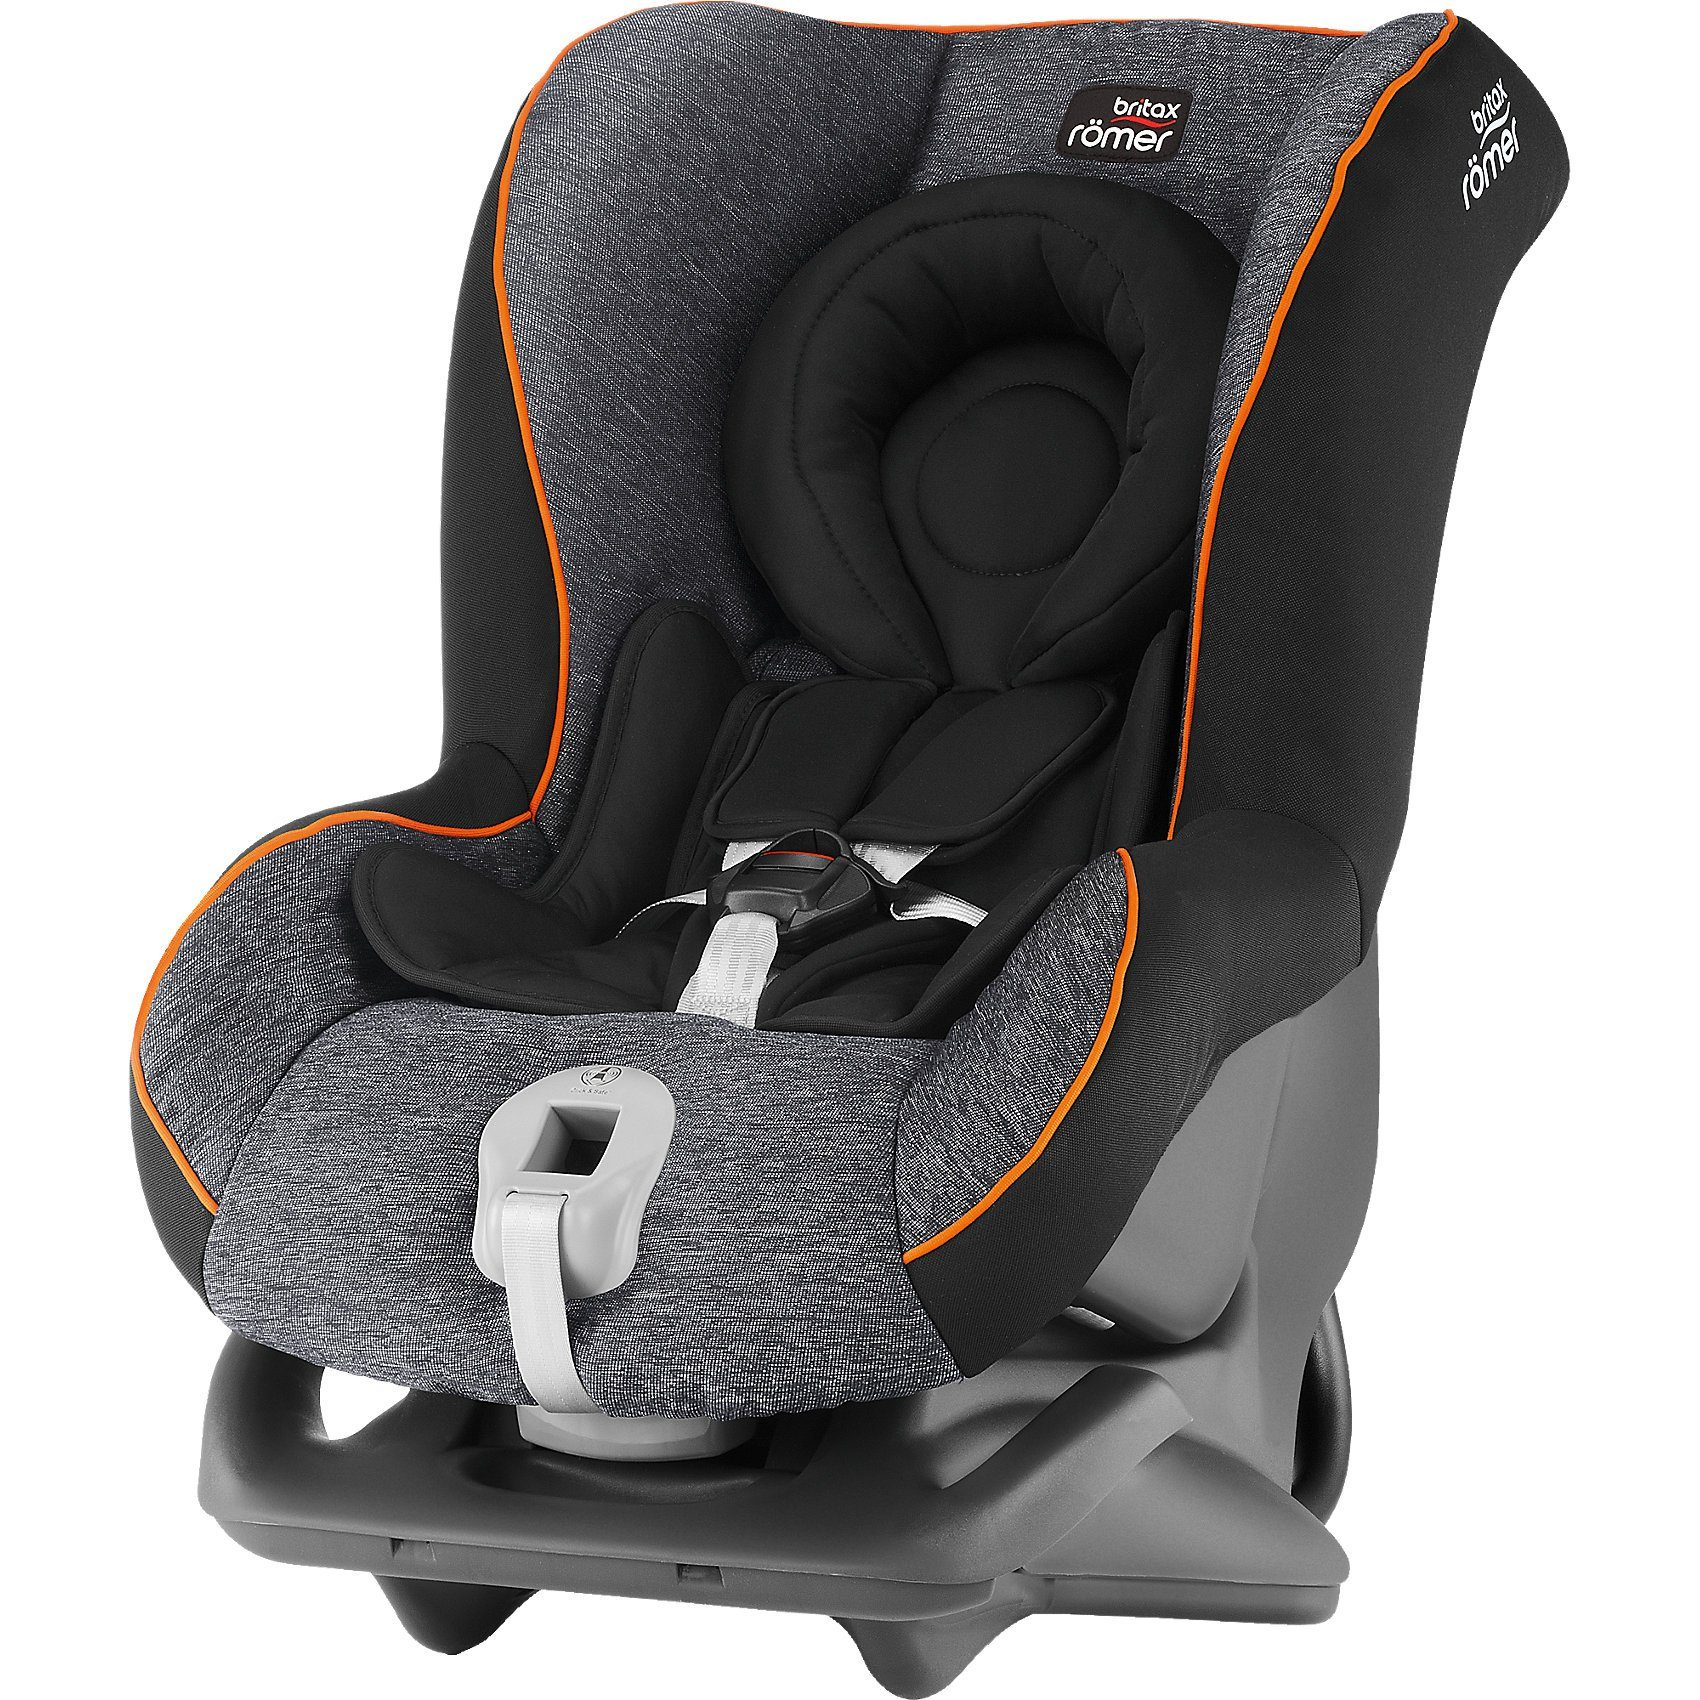 Kindersitz Rückwärts Gerichtet Britax RÖmer Auto Kindersitz First Class Plus Black